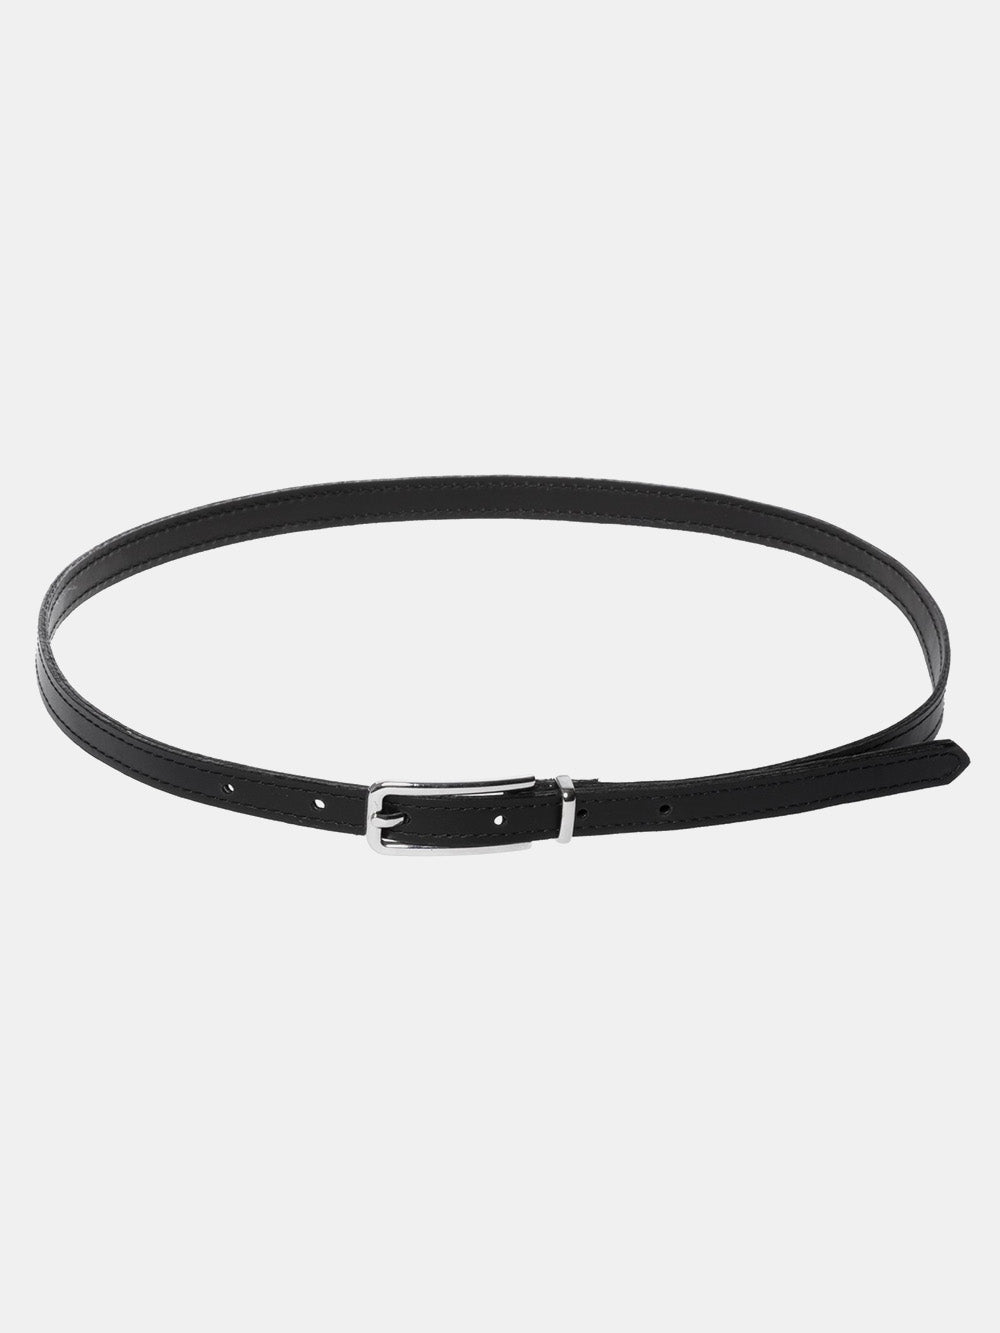 clyde lea belt in black